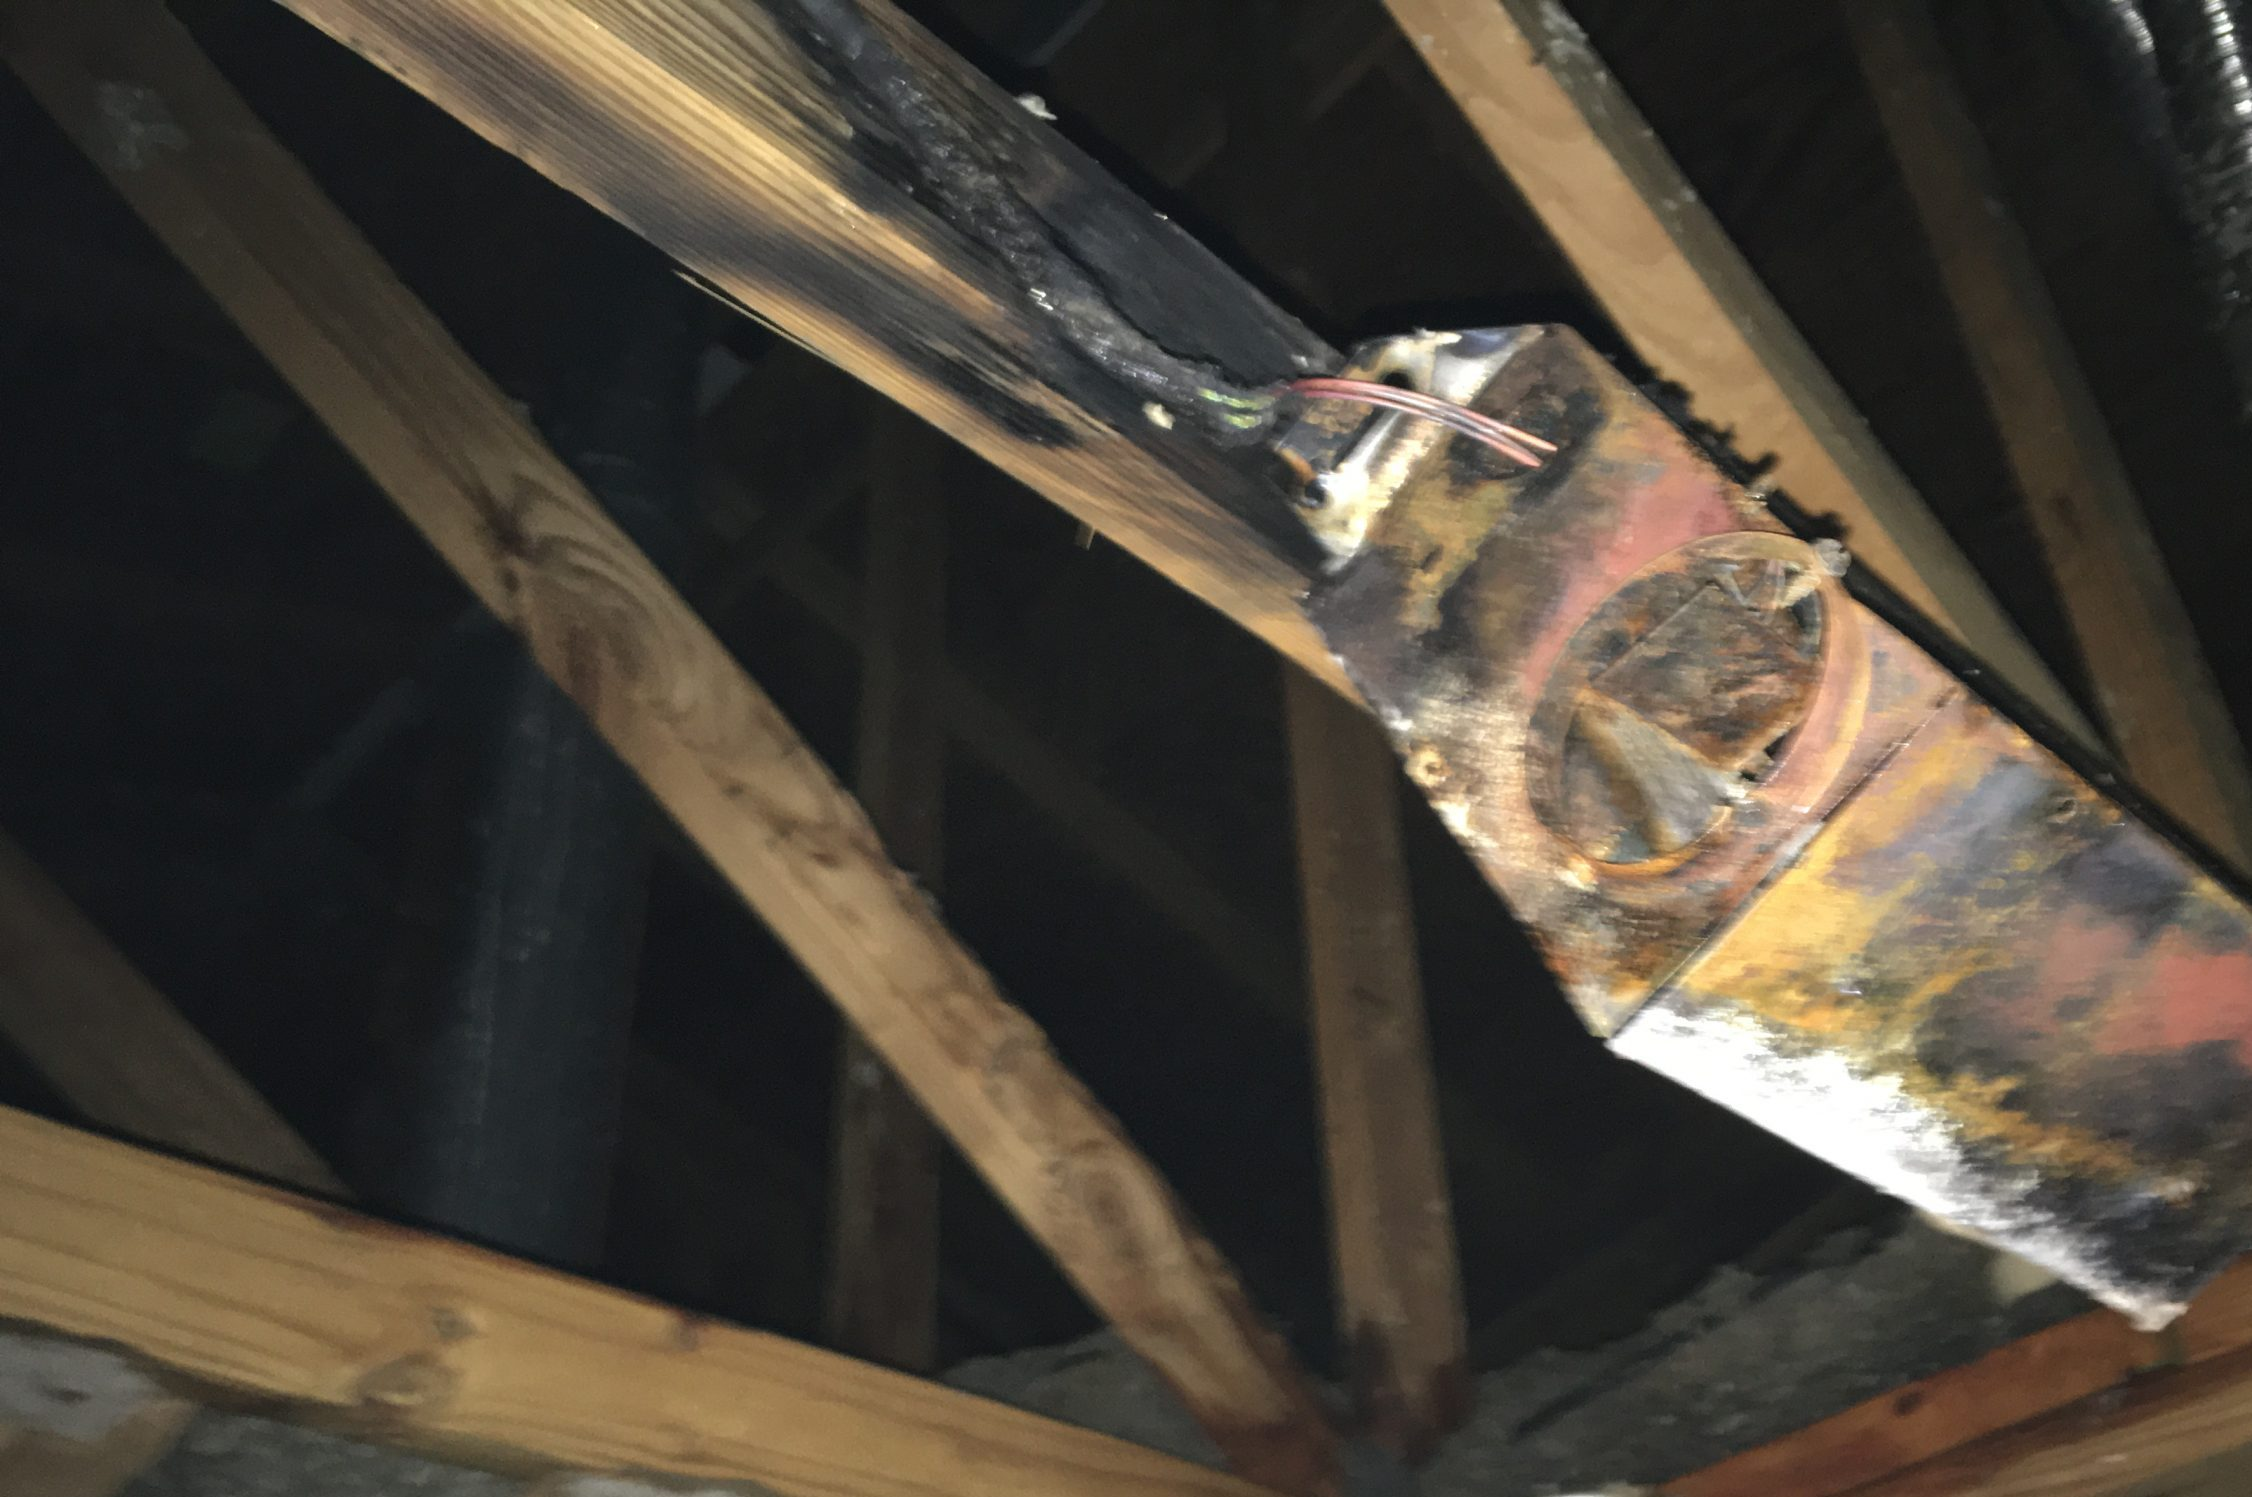 a picture of damage at a commercial water damage project